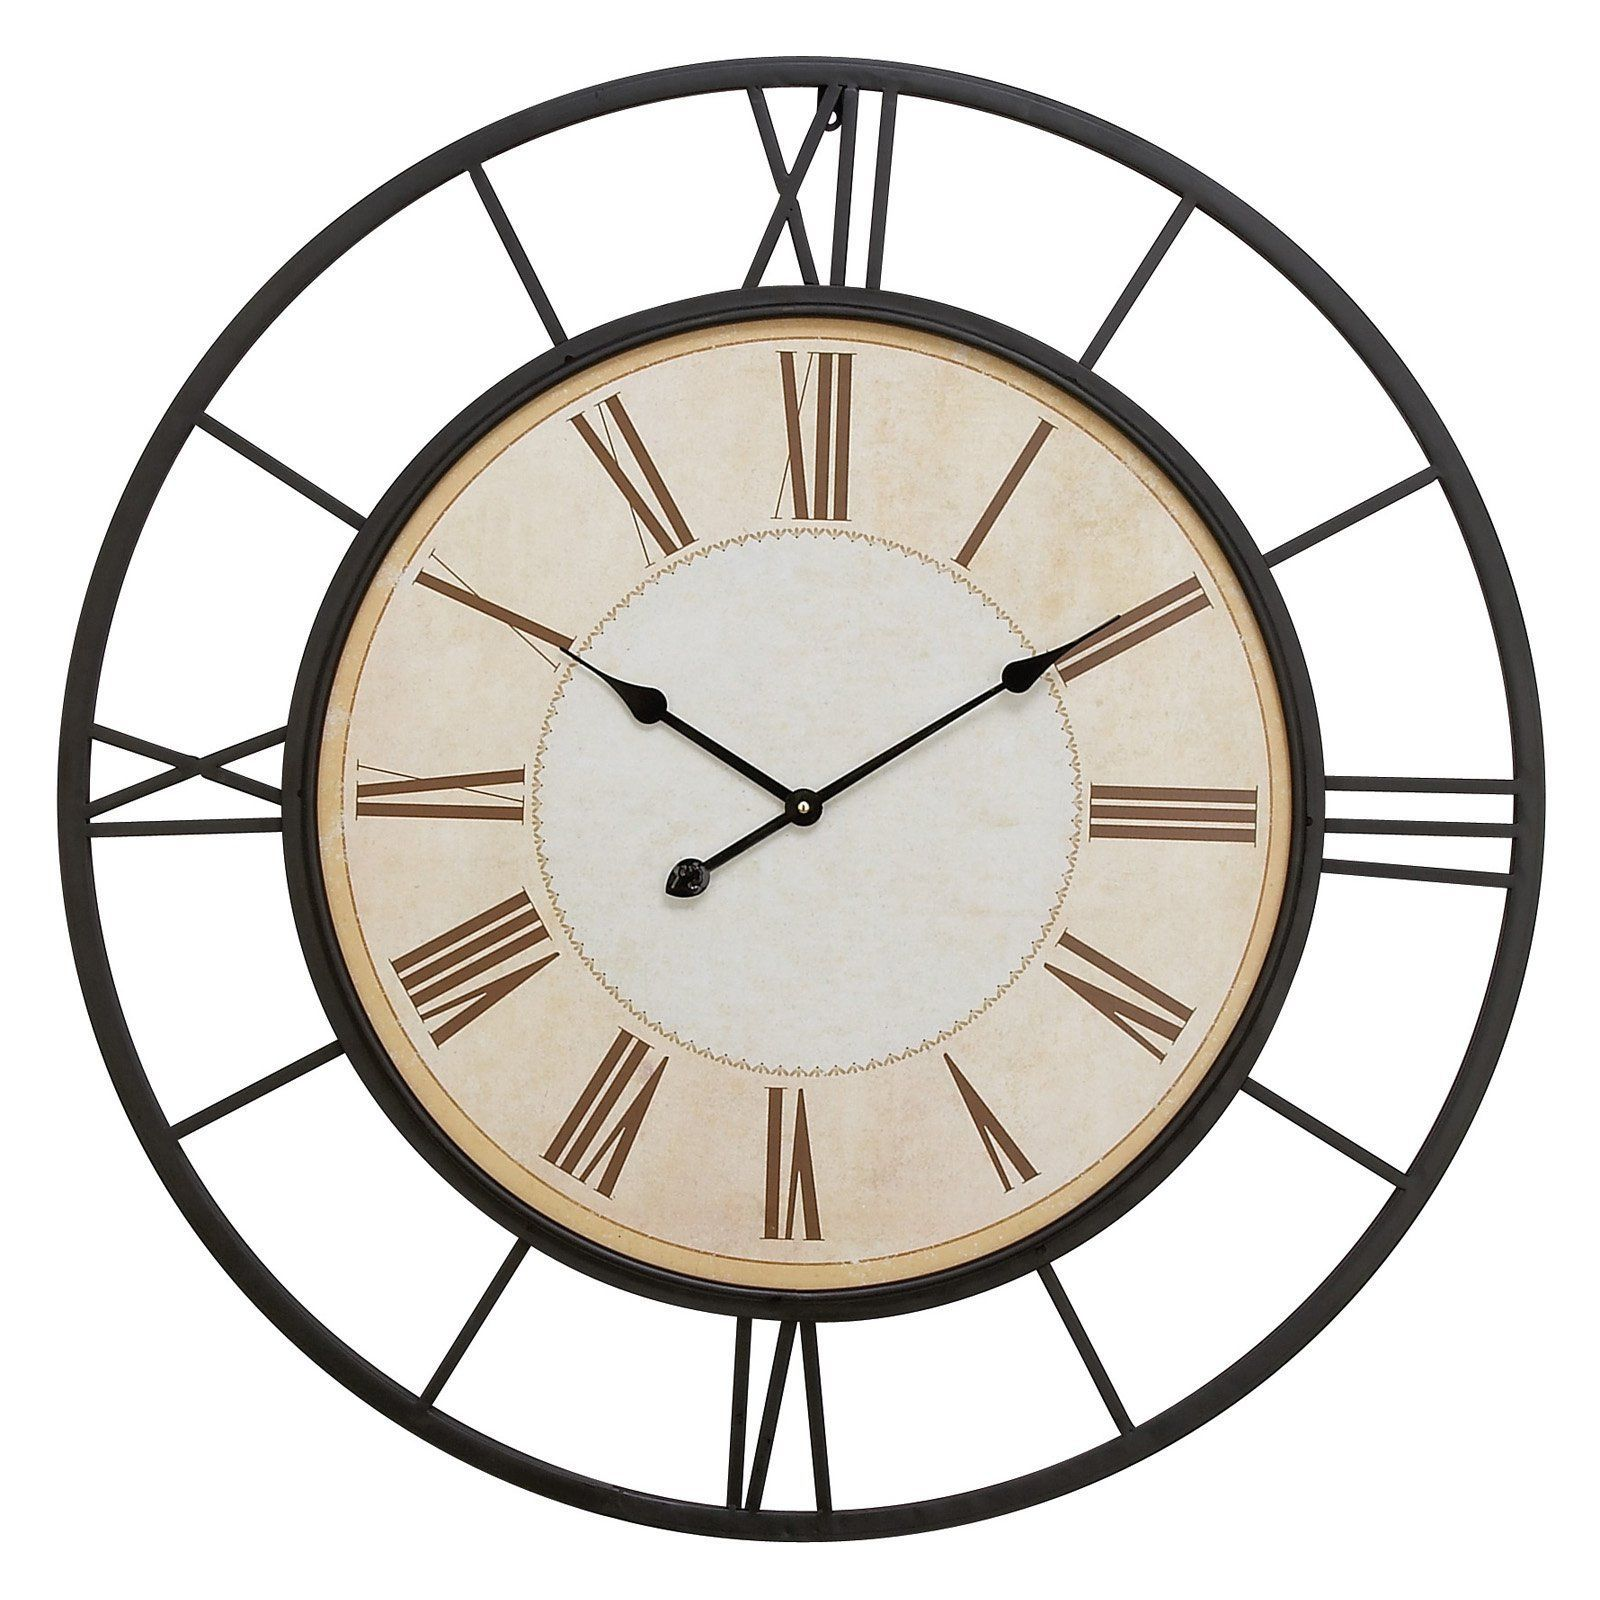 Decmode round metal wall clock diam in from hayneedle